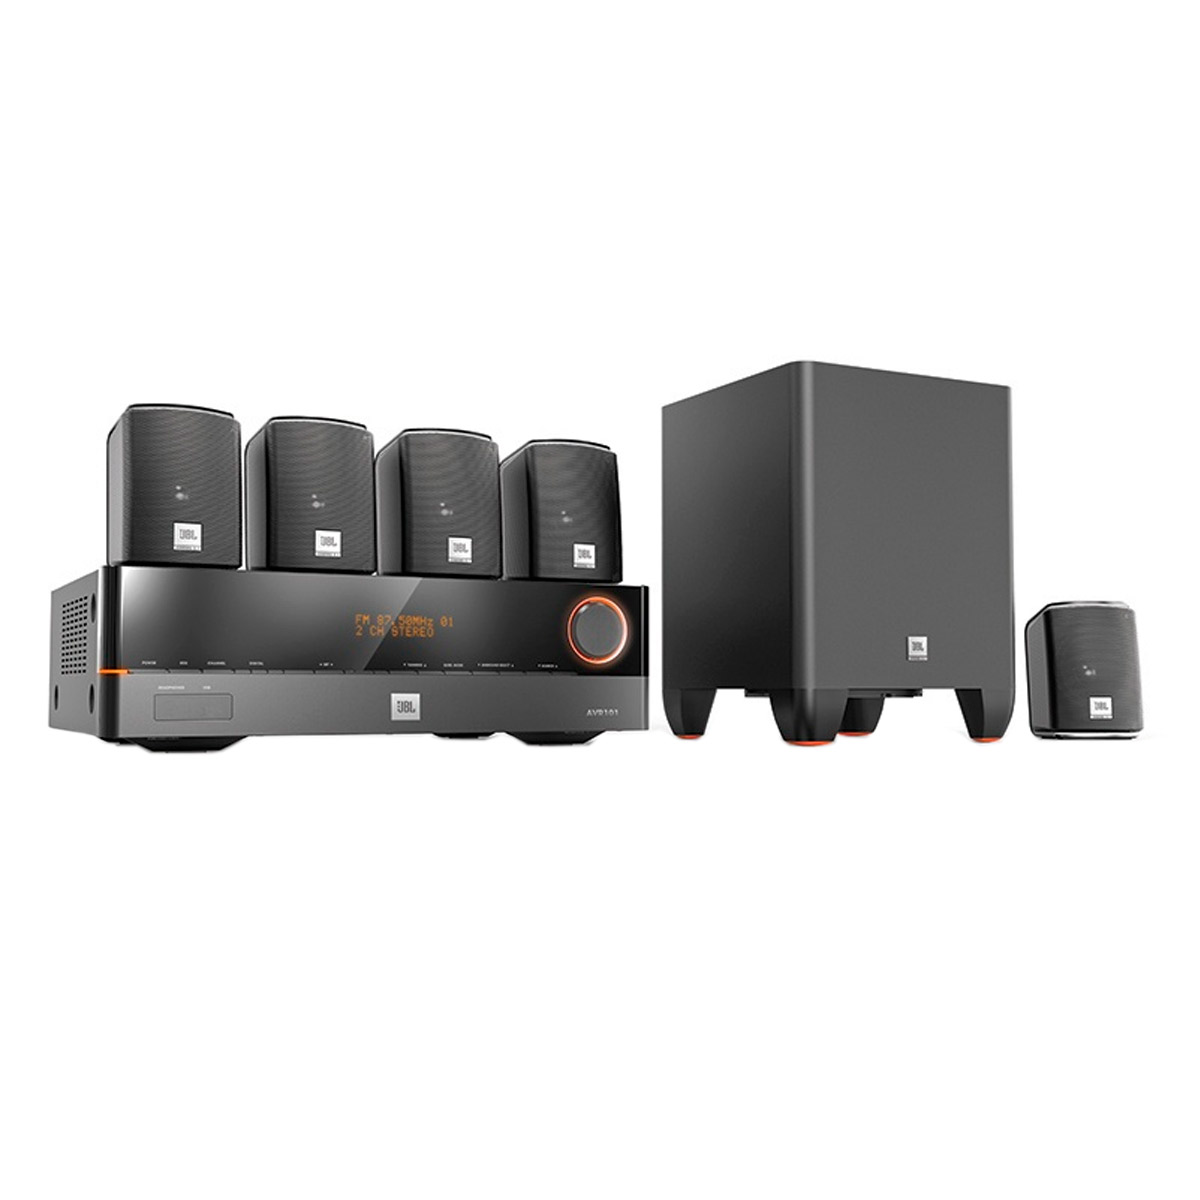 CinemaJ5100 - Home Theater c/ Receiver 5.1 Canais 4 HDMI, 5 Caixas e 1 Subwoofer Cinema J5100 110V - JBL